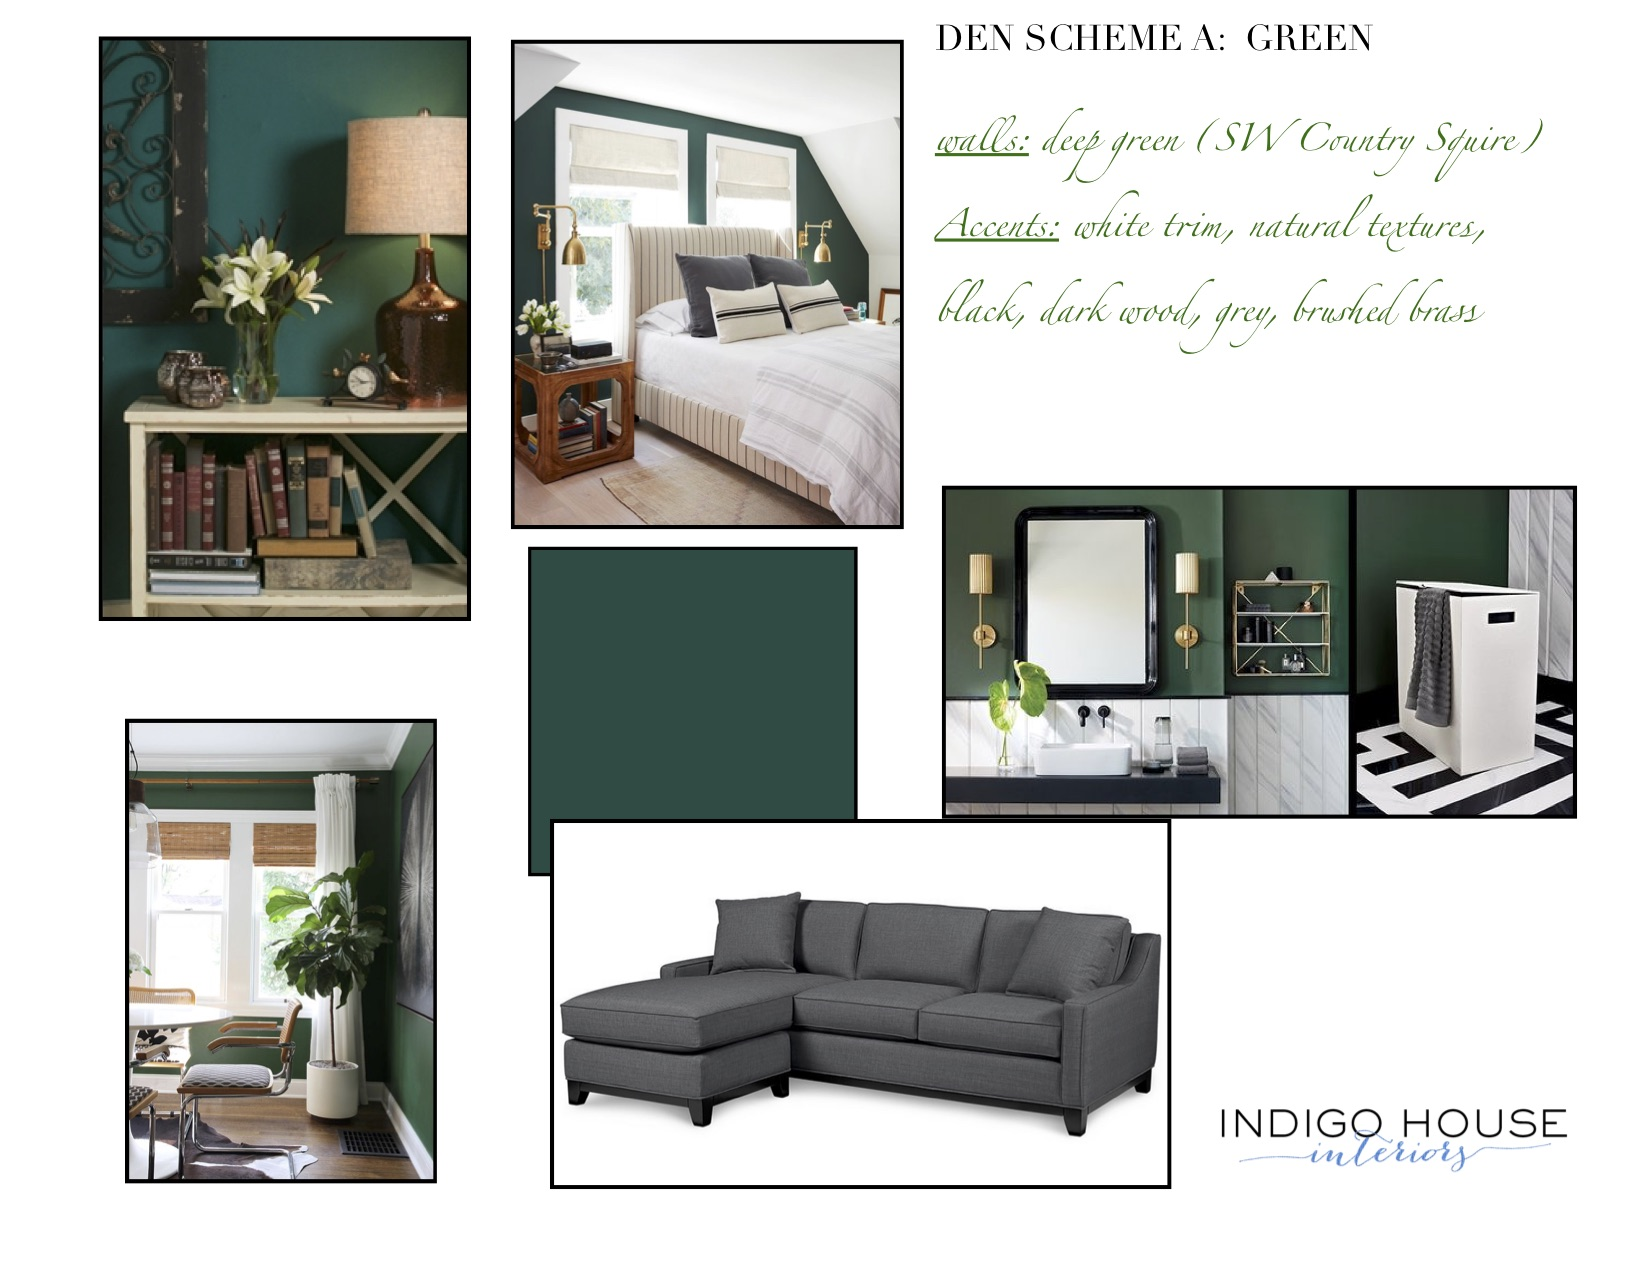 Design Concept board for a color scheme for a room about to be painted, working with clients' existing furniture